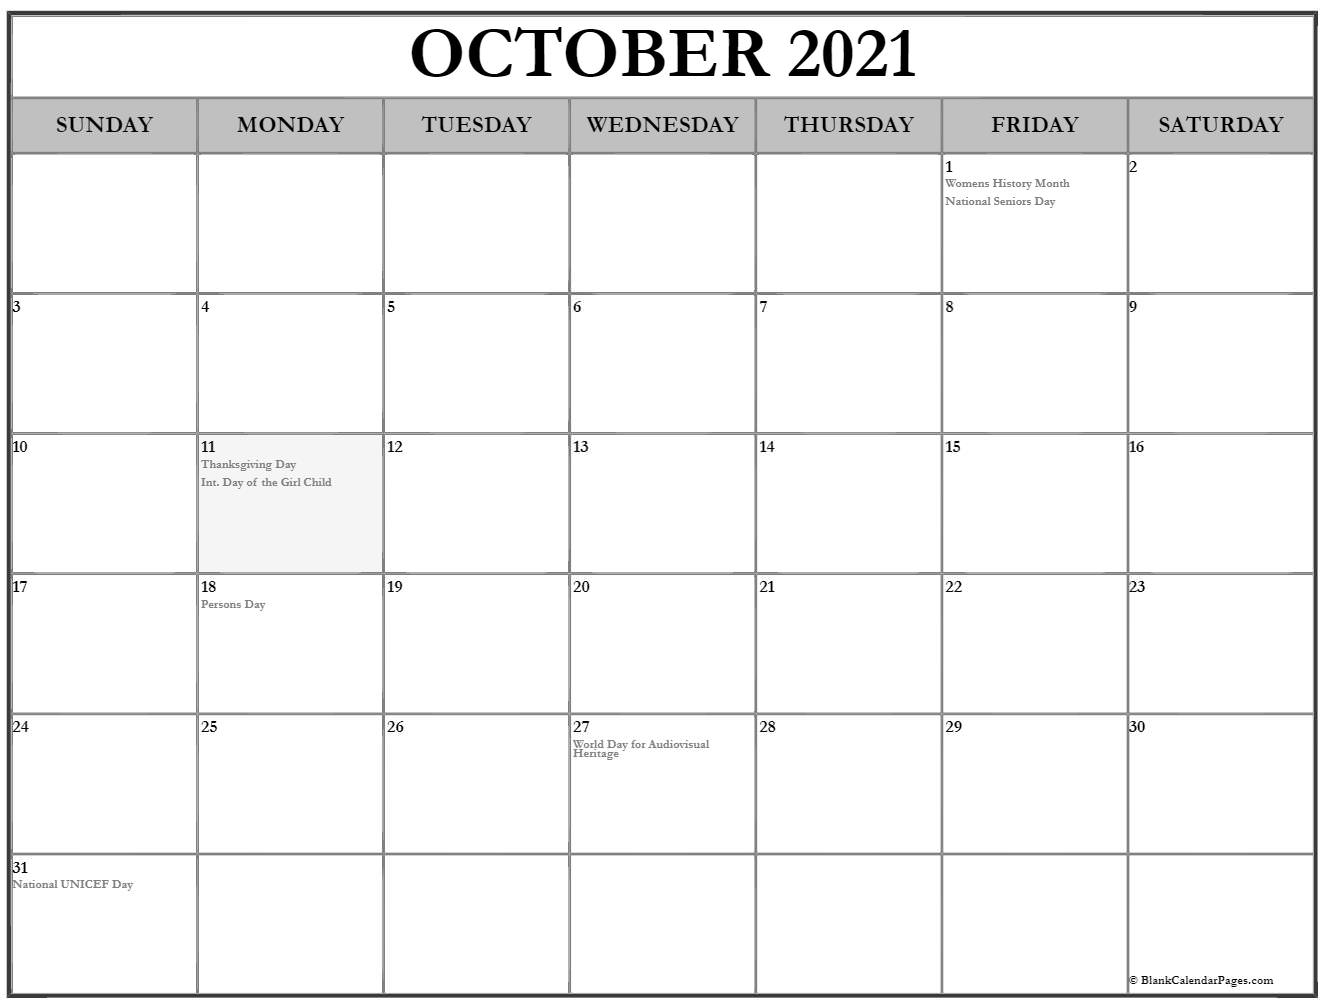 Month of October 2021 holidays Canada